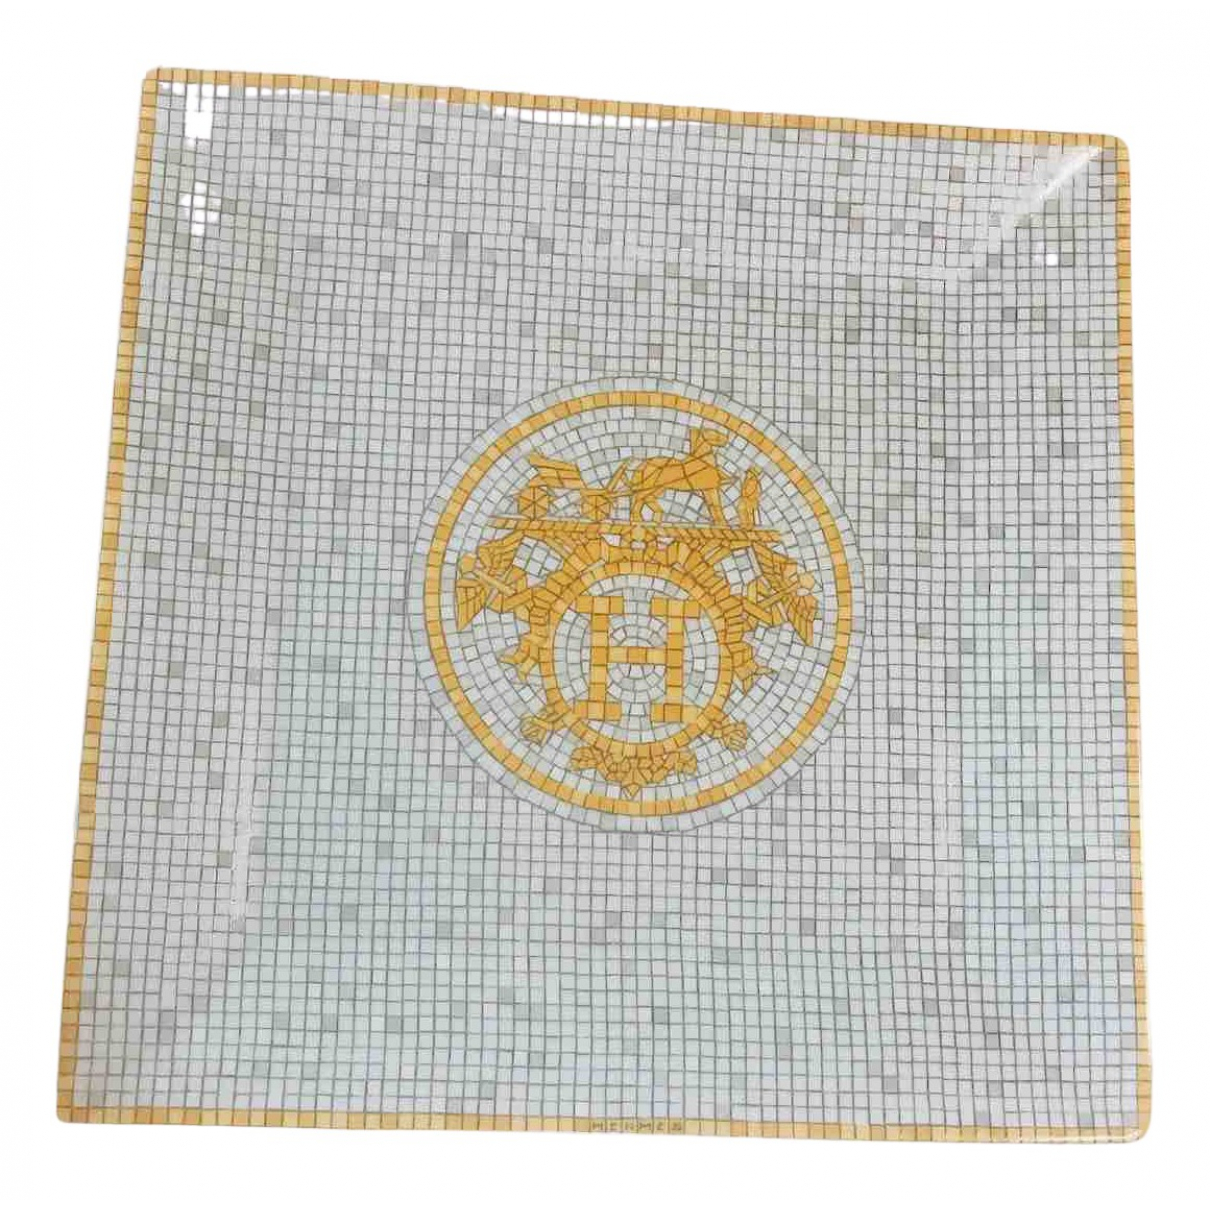 Hermes - Arts de la table Mosaique au 24 pour lifestyle en porcelaine - blanc